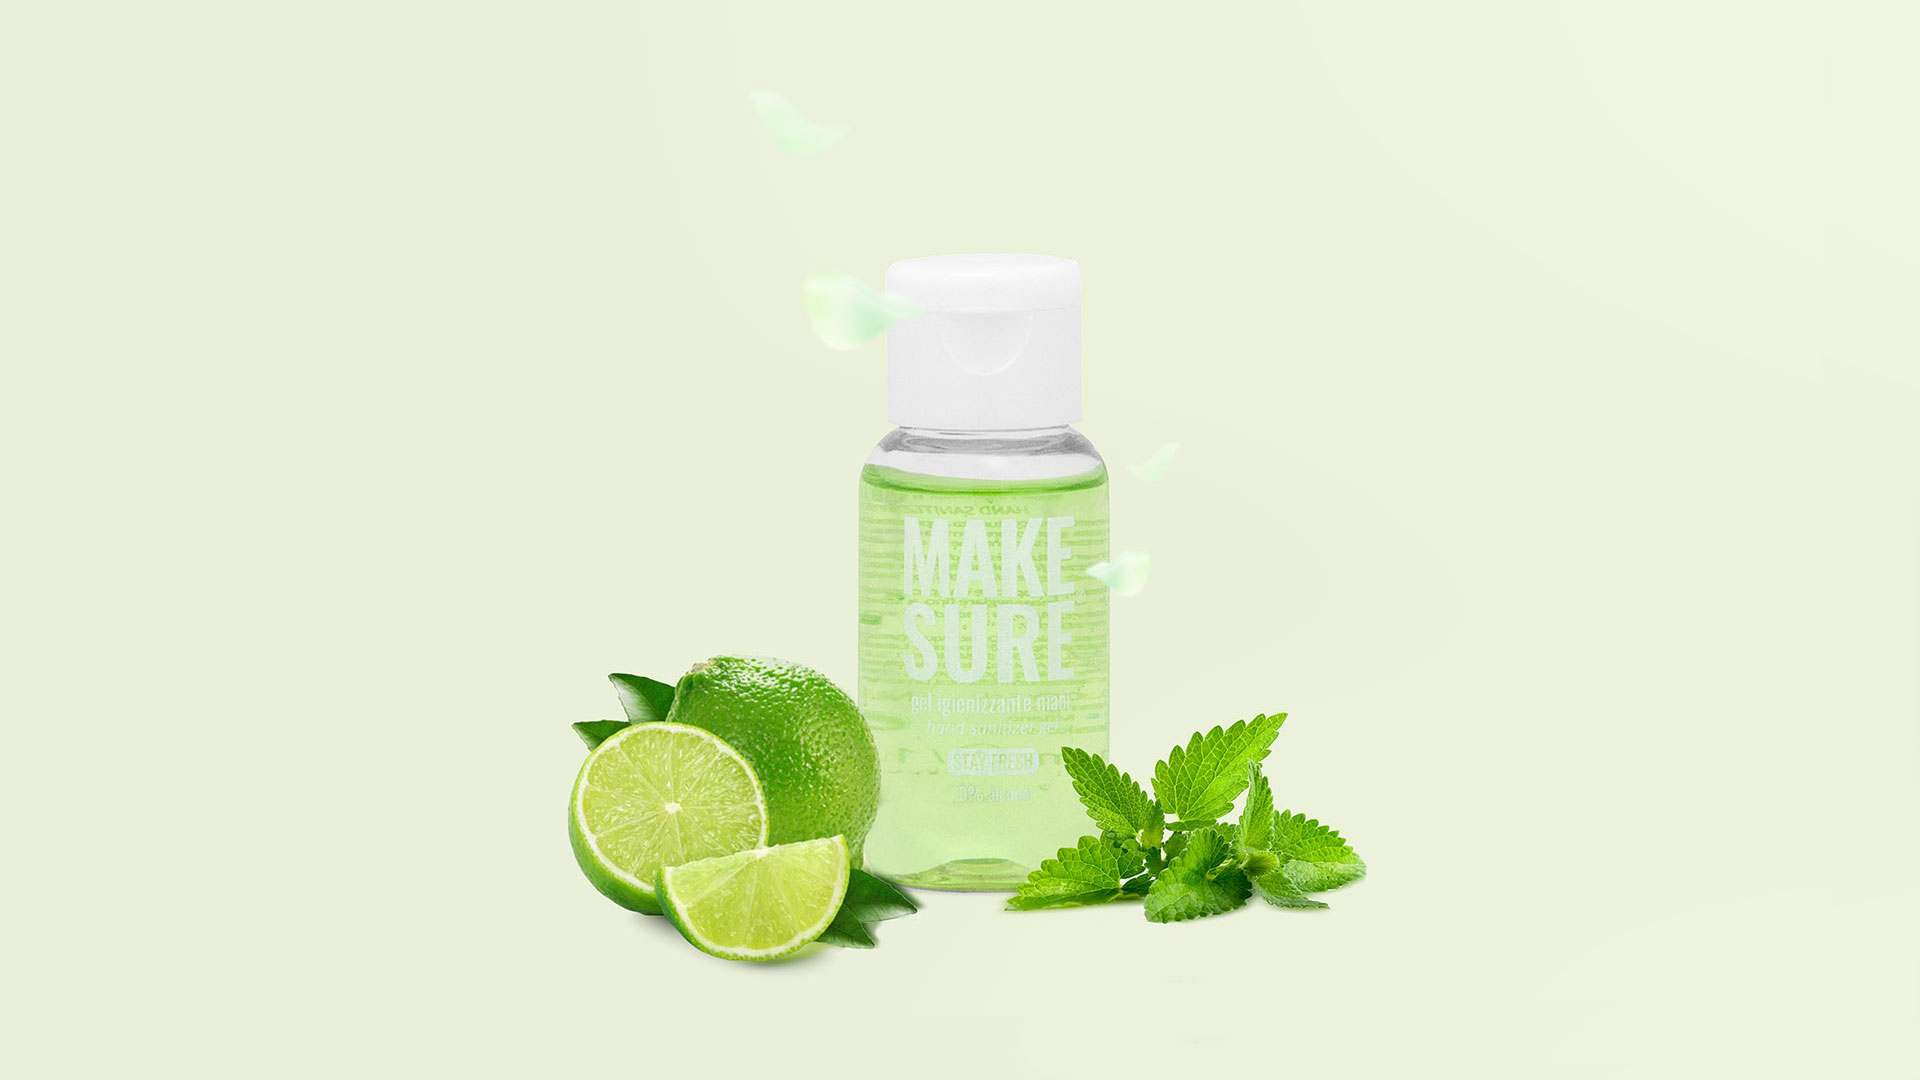 gel igienizzante mani 50ml colorato e profumato menta e lime stay fresh make-sure